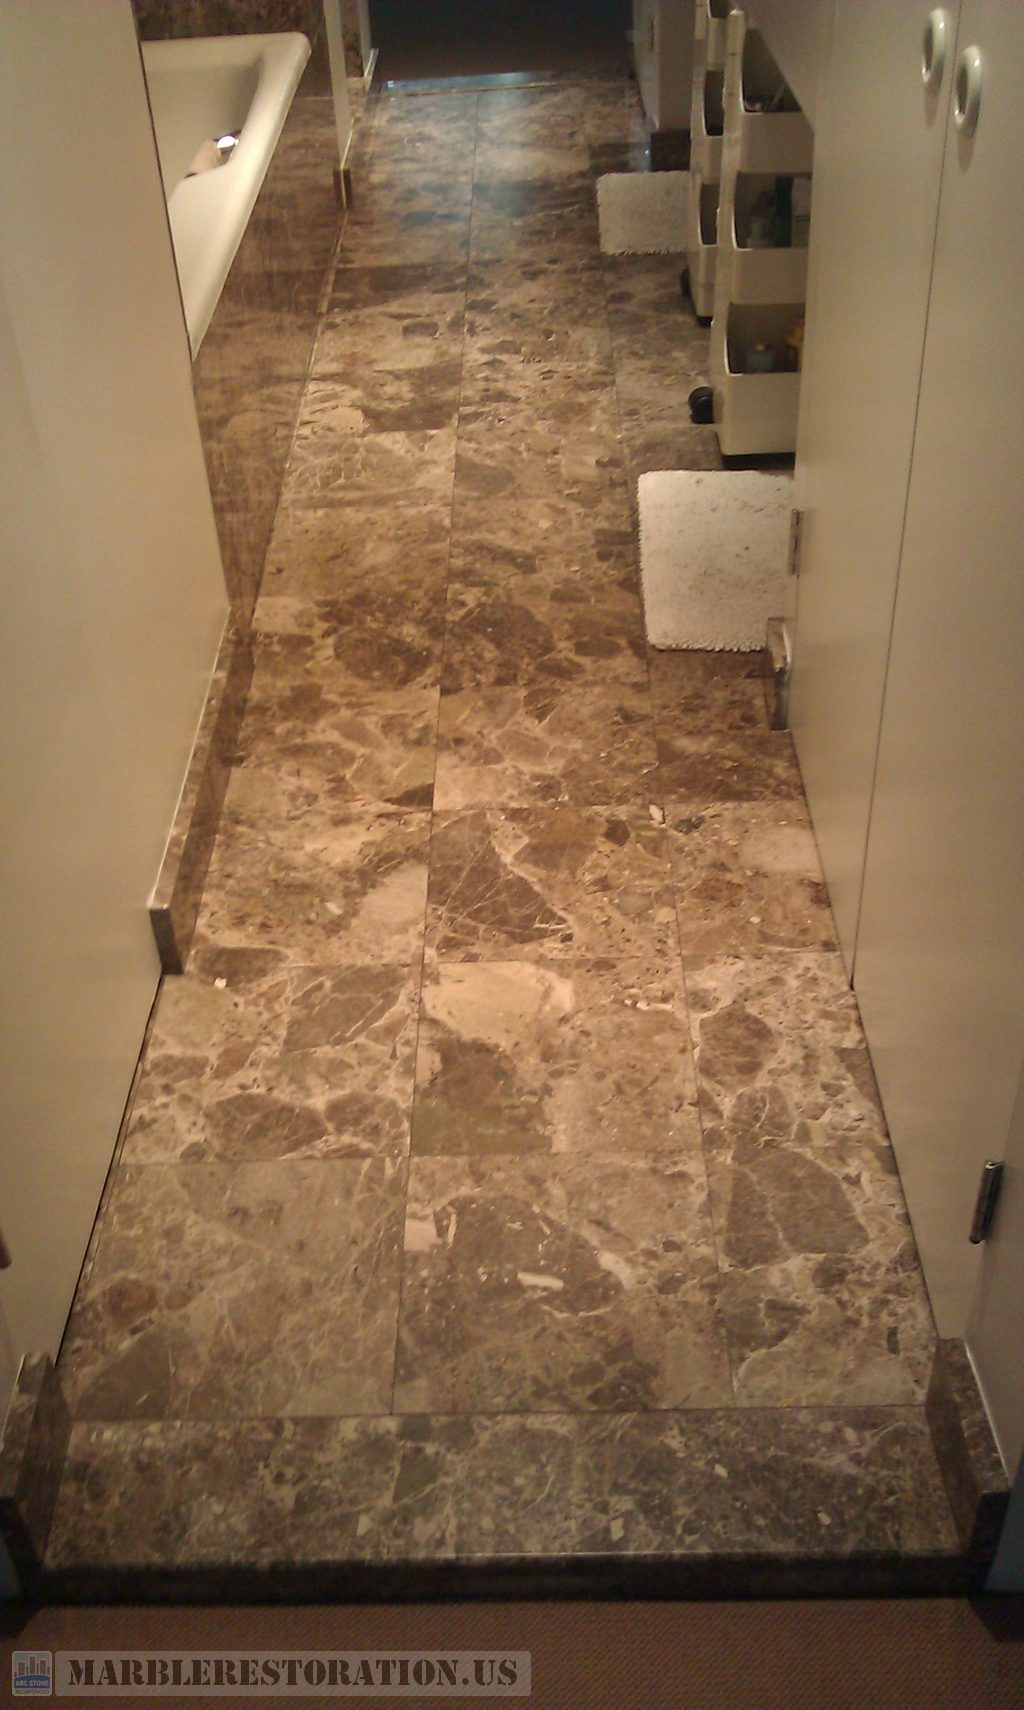 Shabby Dark Emperador Marble Worn Out and Dull Bathroom Tiles